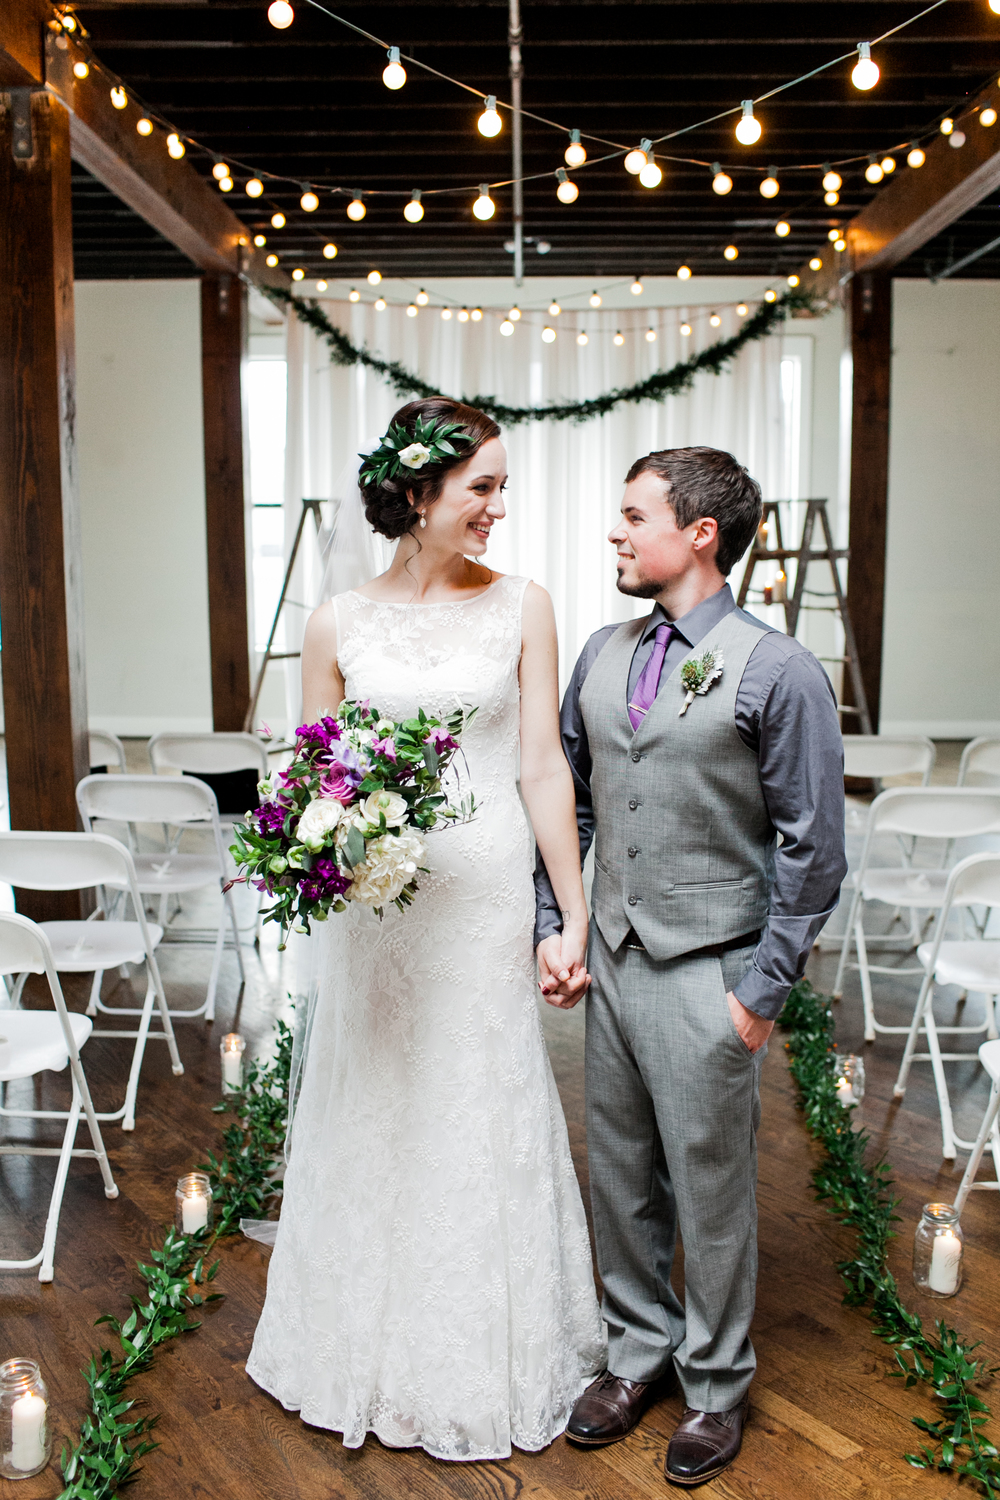 Ally + Zach's joyfilled, fall wedding in Birmingham, Alabama. Pops of purple, white, green and gold. The venues were the beautiful upstairs of the of the Avondale Brewery and the historic outdoor venue of the Avondale Villa. This was a wedding full of memorials, special moments, lots of friendship, love and laughter with reception decor that looks a little bit like it might belong in Harry Potter's Hogwarts. Planned + Designed by @PaperSwallowEve, Photography by Mary Margaret Smith, Flowers by Hot House Design Studio + Paper Swallow Events, Donuts by the Heavenly Donut Co and live music from the Goat Hill String Band.